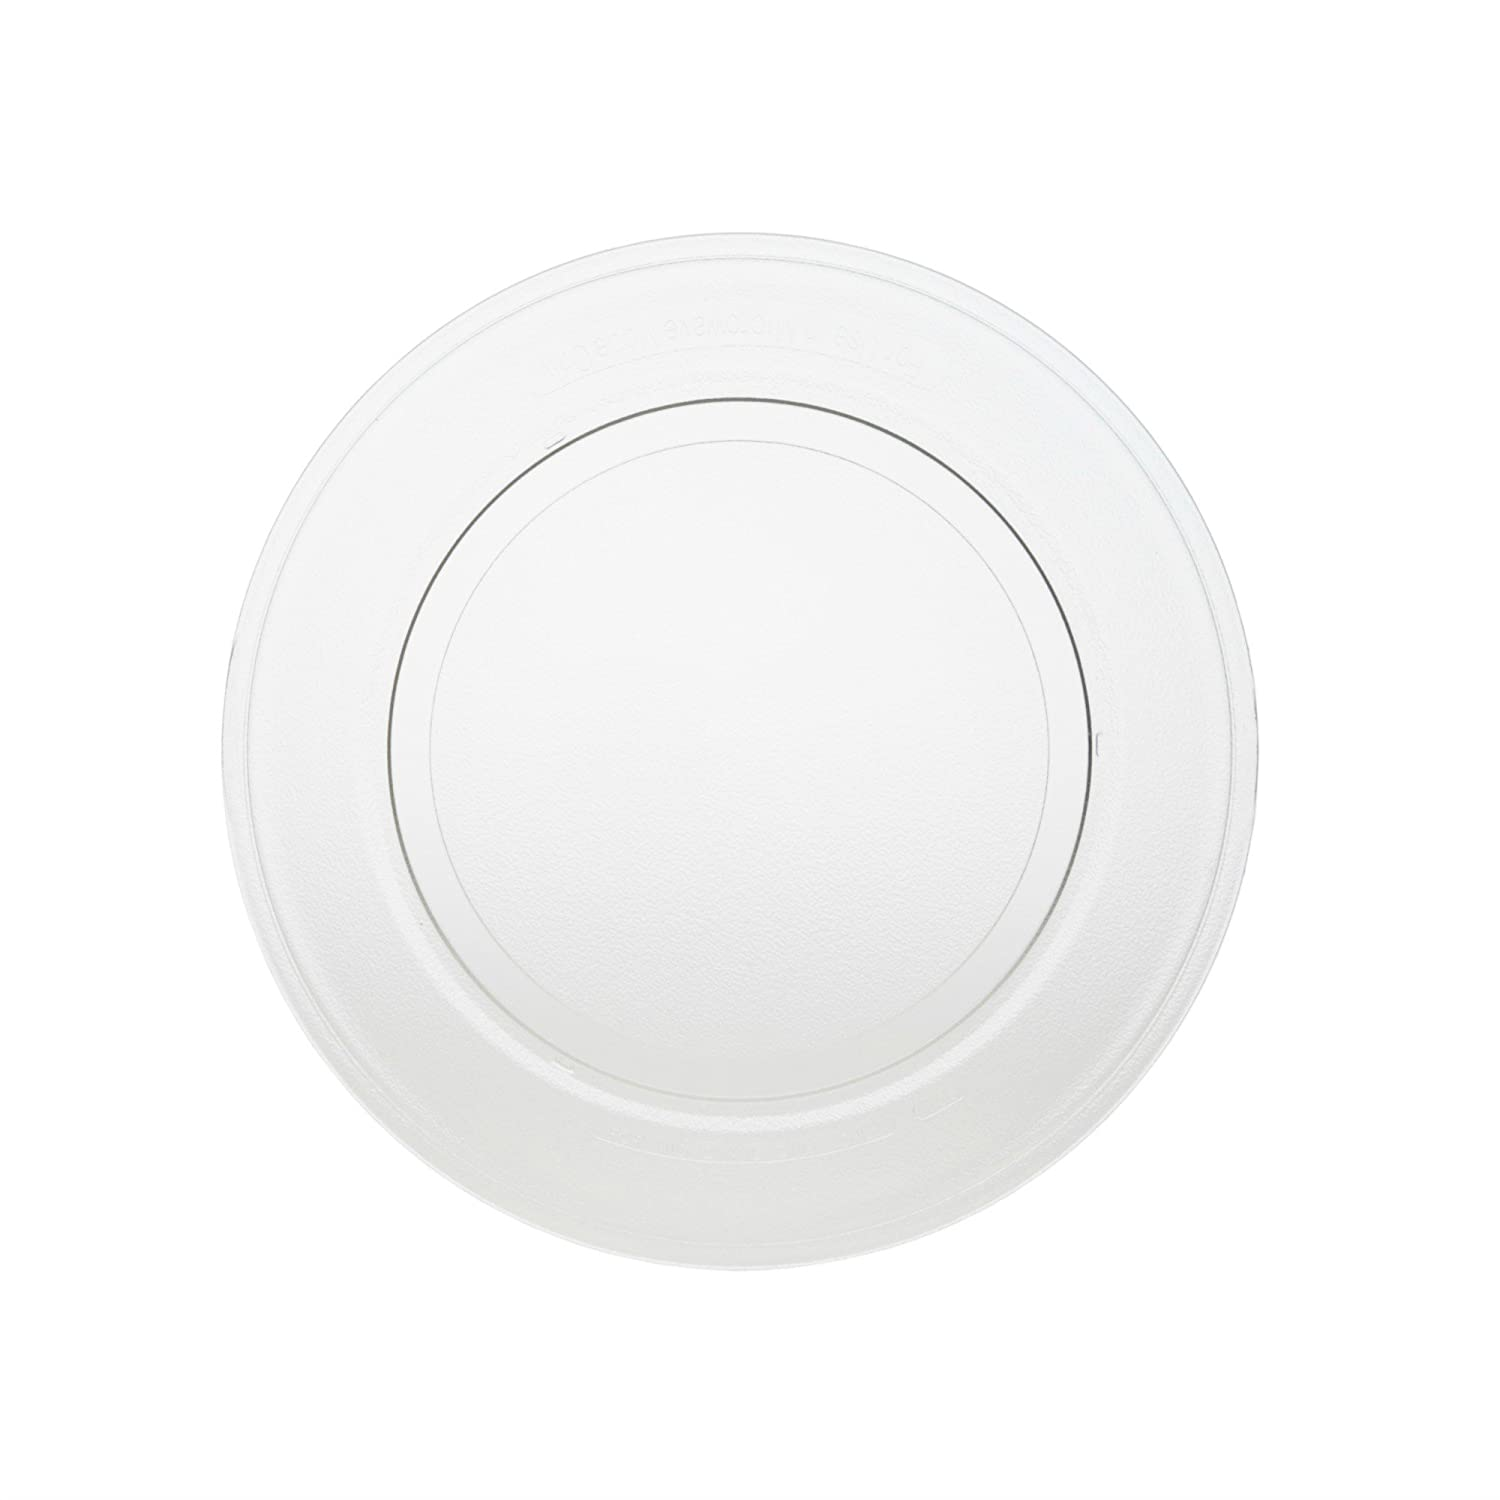 G.E. Microwave Glass Turntable Plate/Tray 16